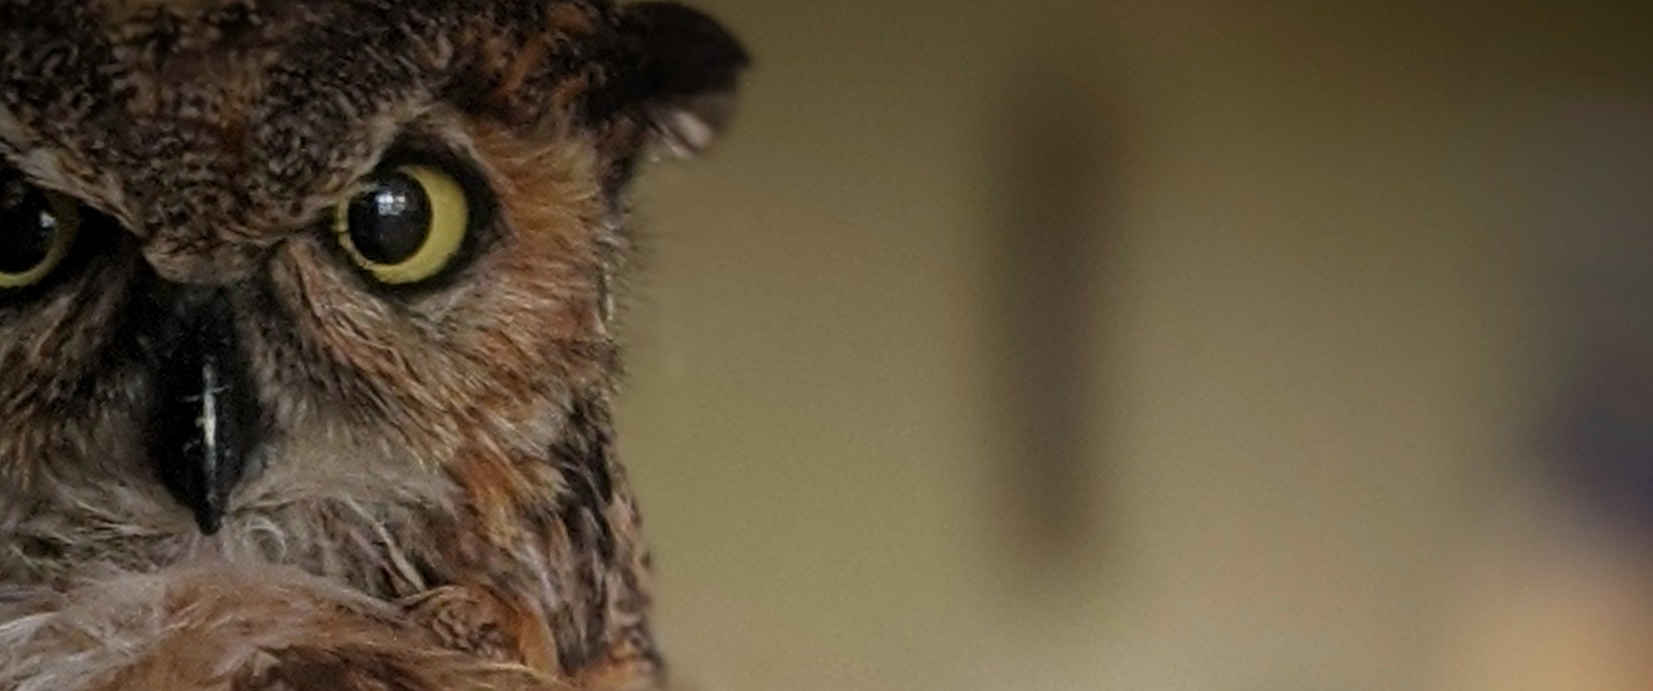 Adopt a Great Horned Owl image